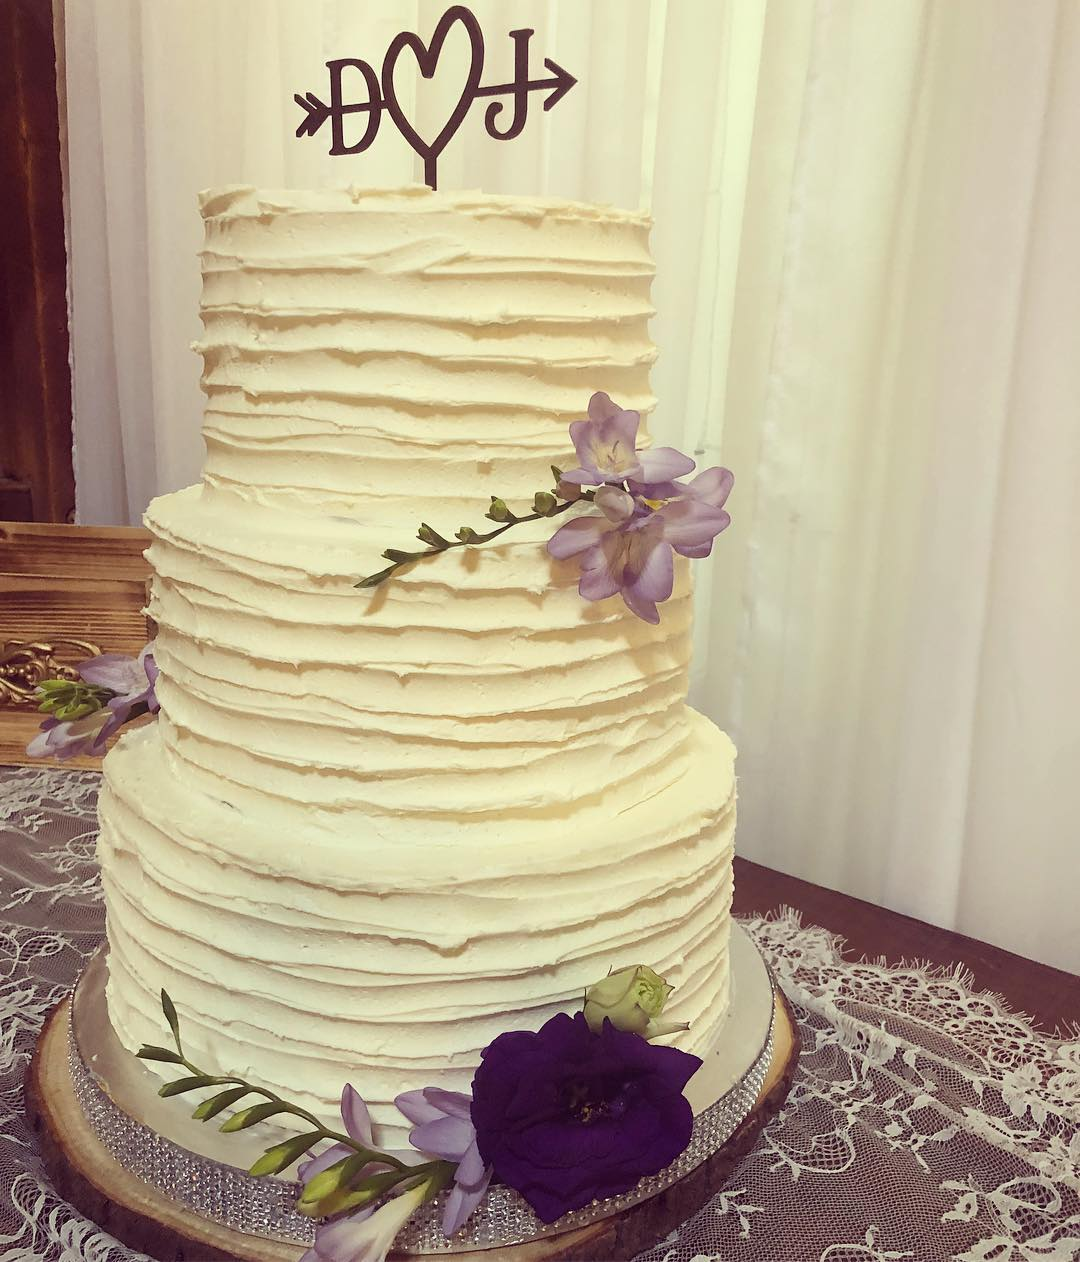 3 Tier Rustic Wedding Cake